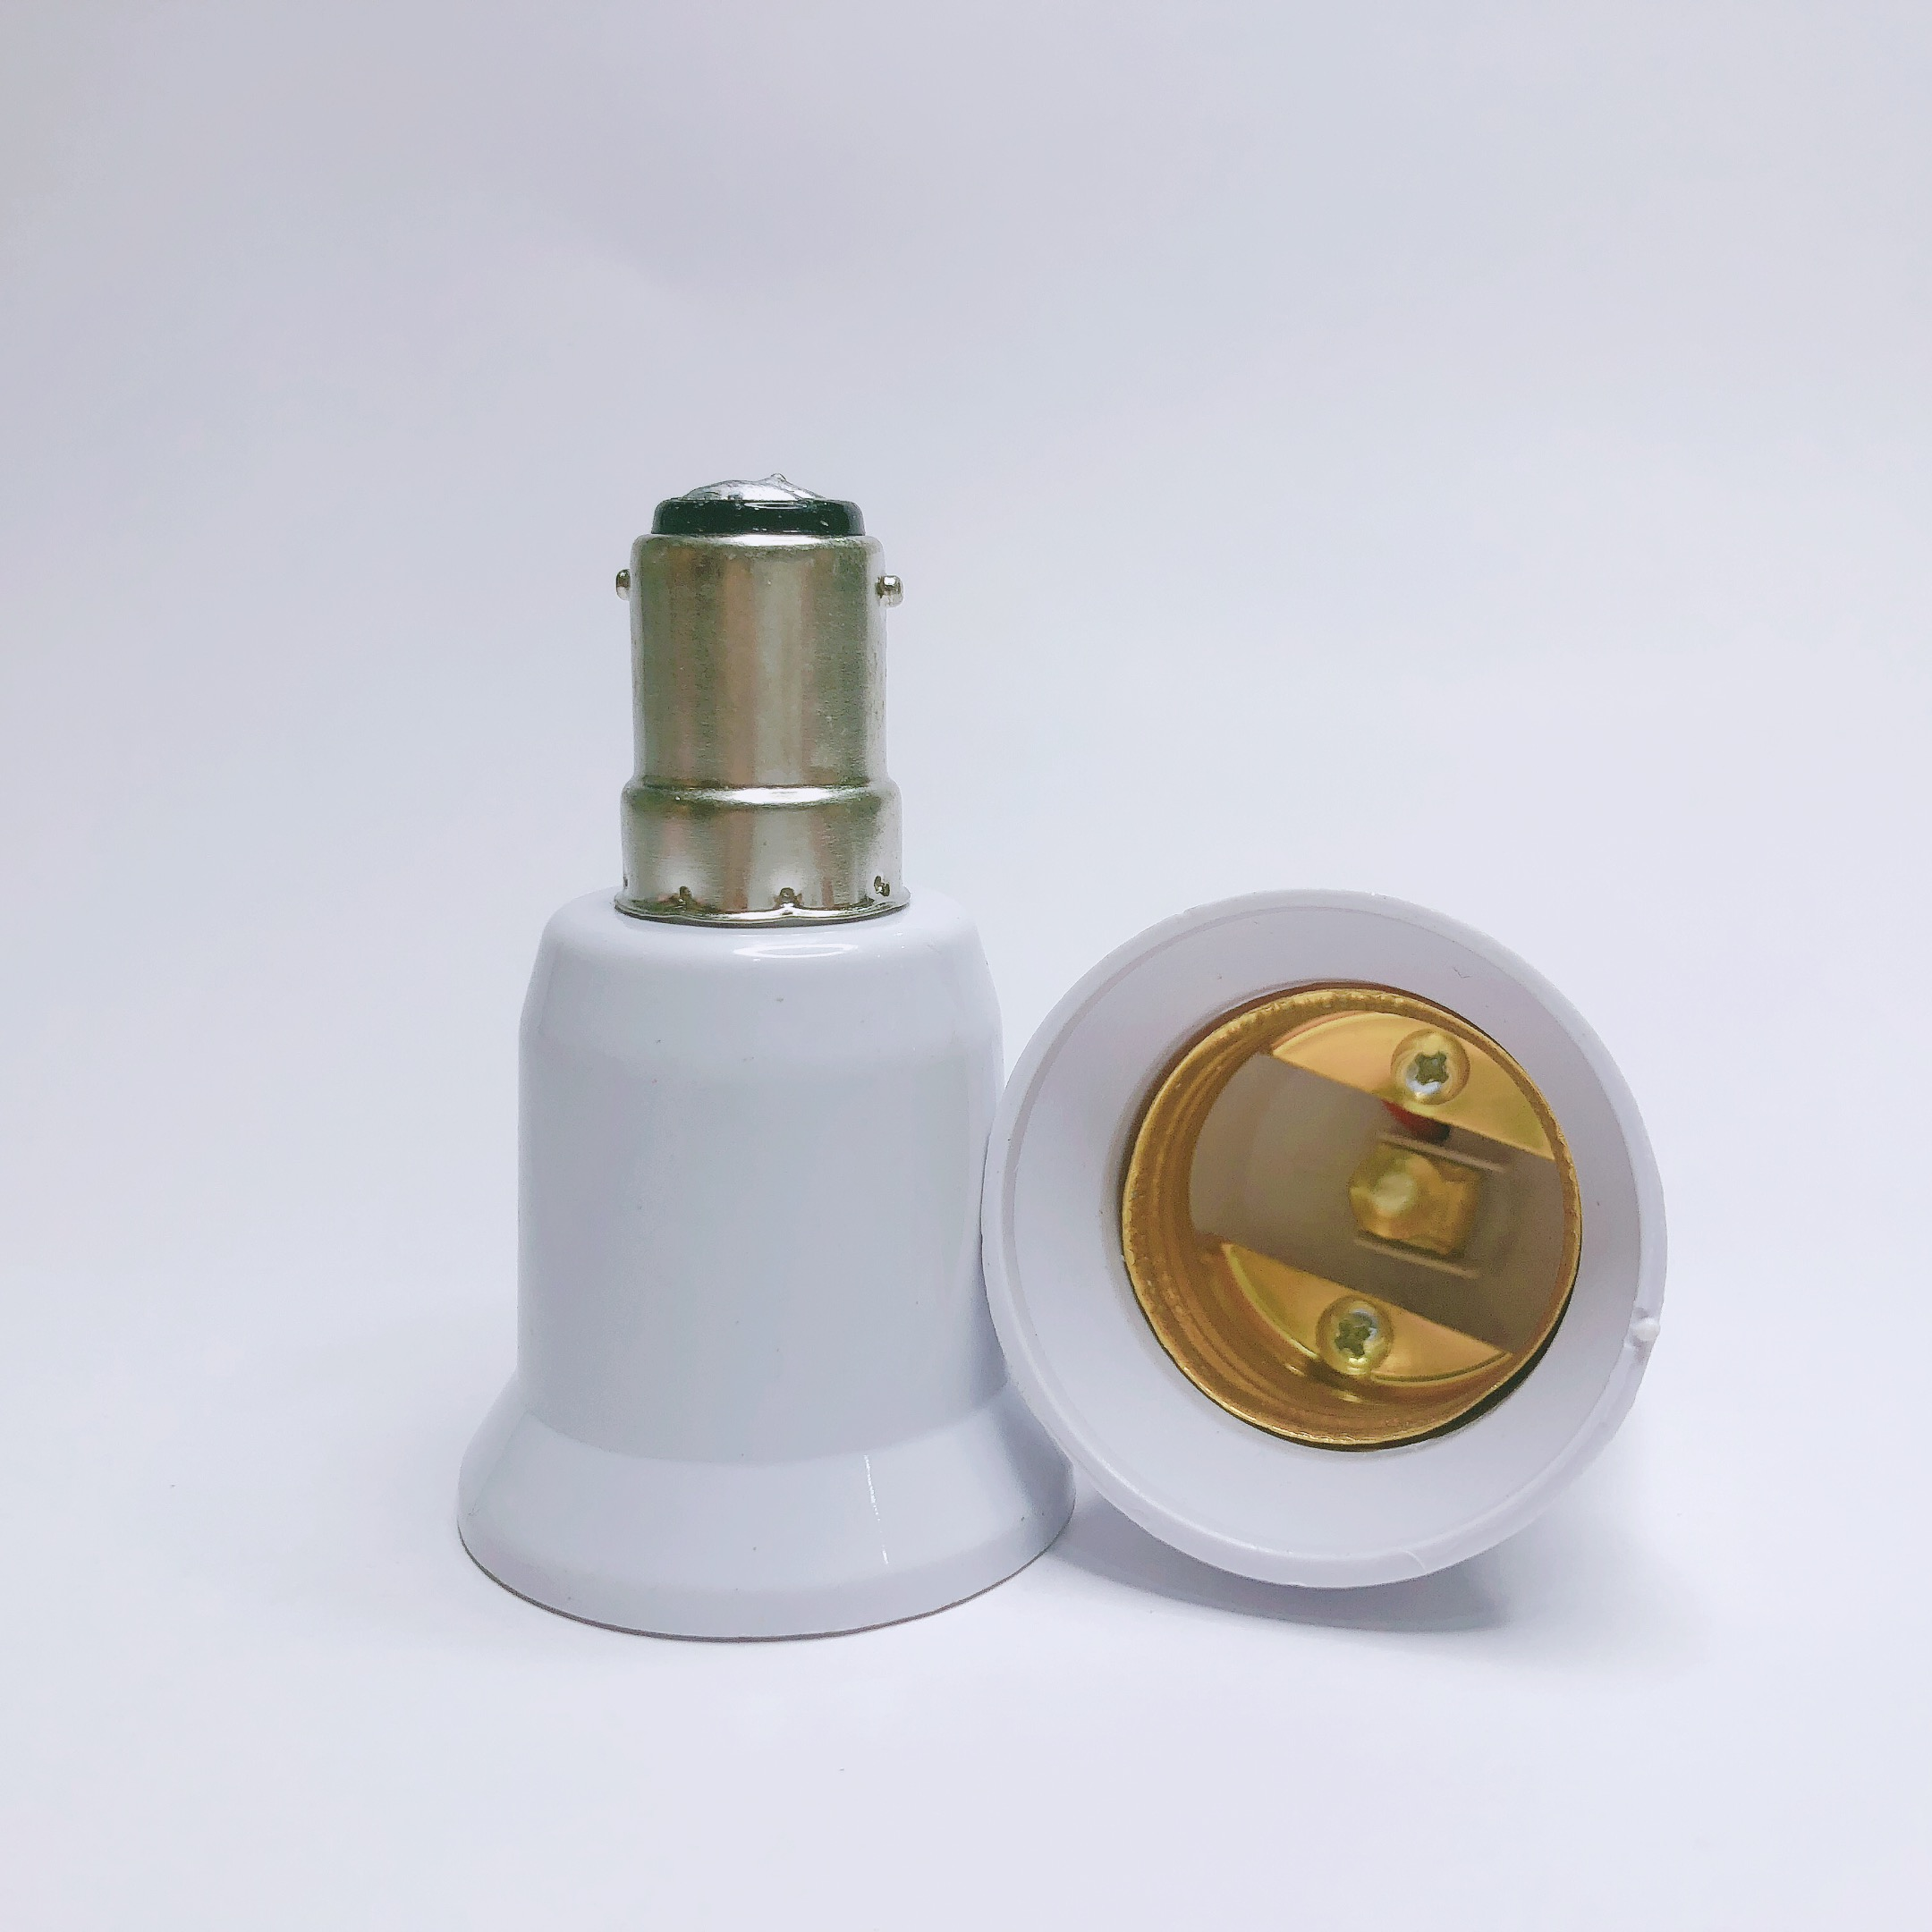 1pc BA15D TO E27 Adapter Conversion Socket High Quality Material Fireproof Material B15 TO E27 Socket Adapter Lamp Holder